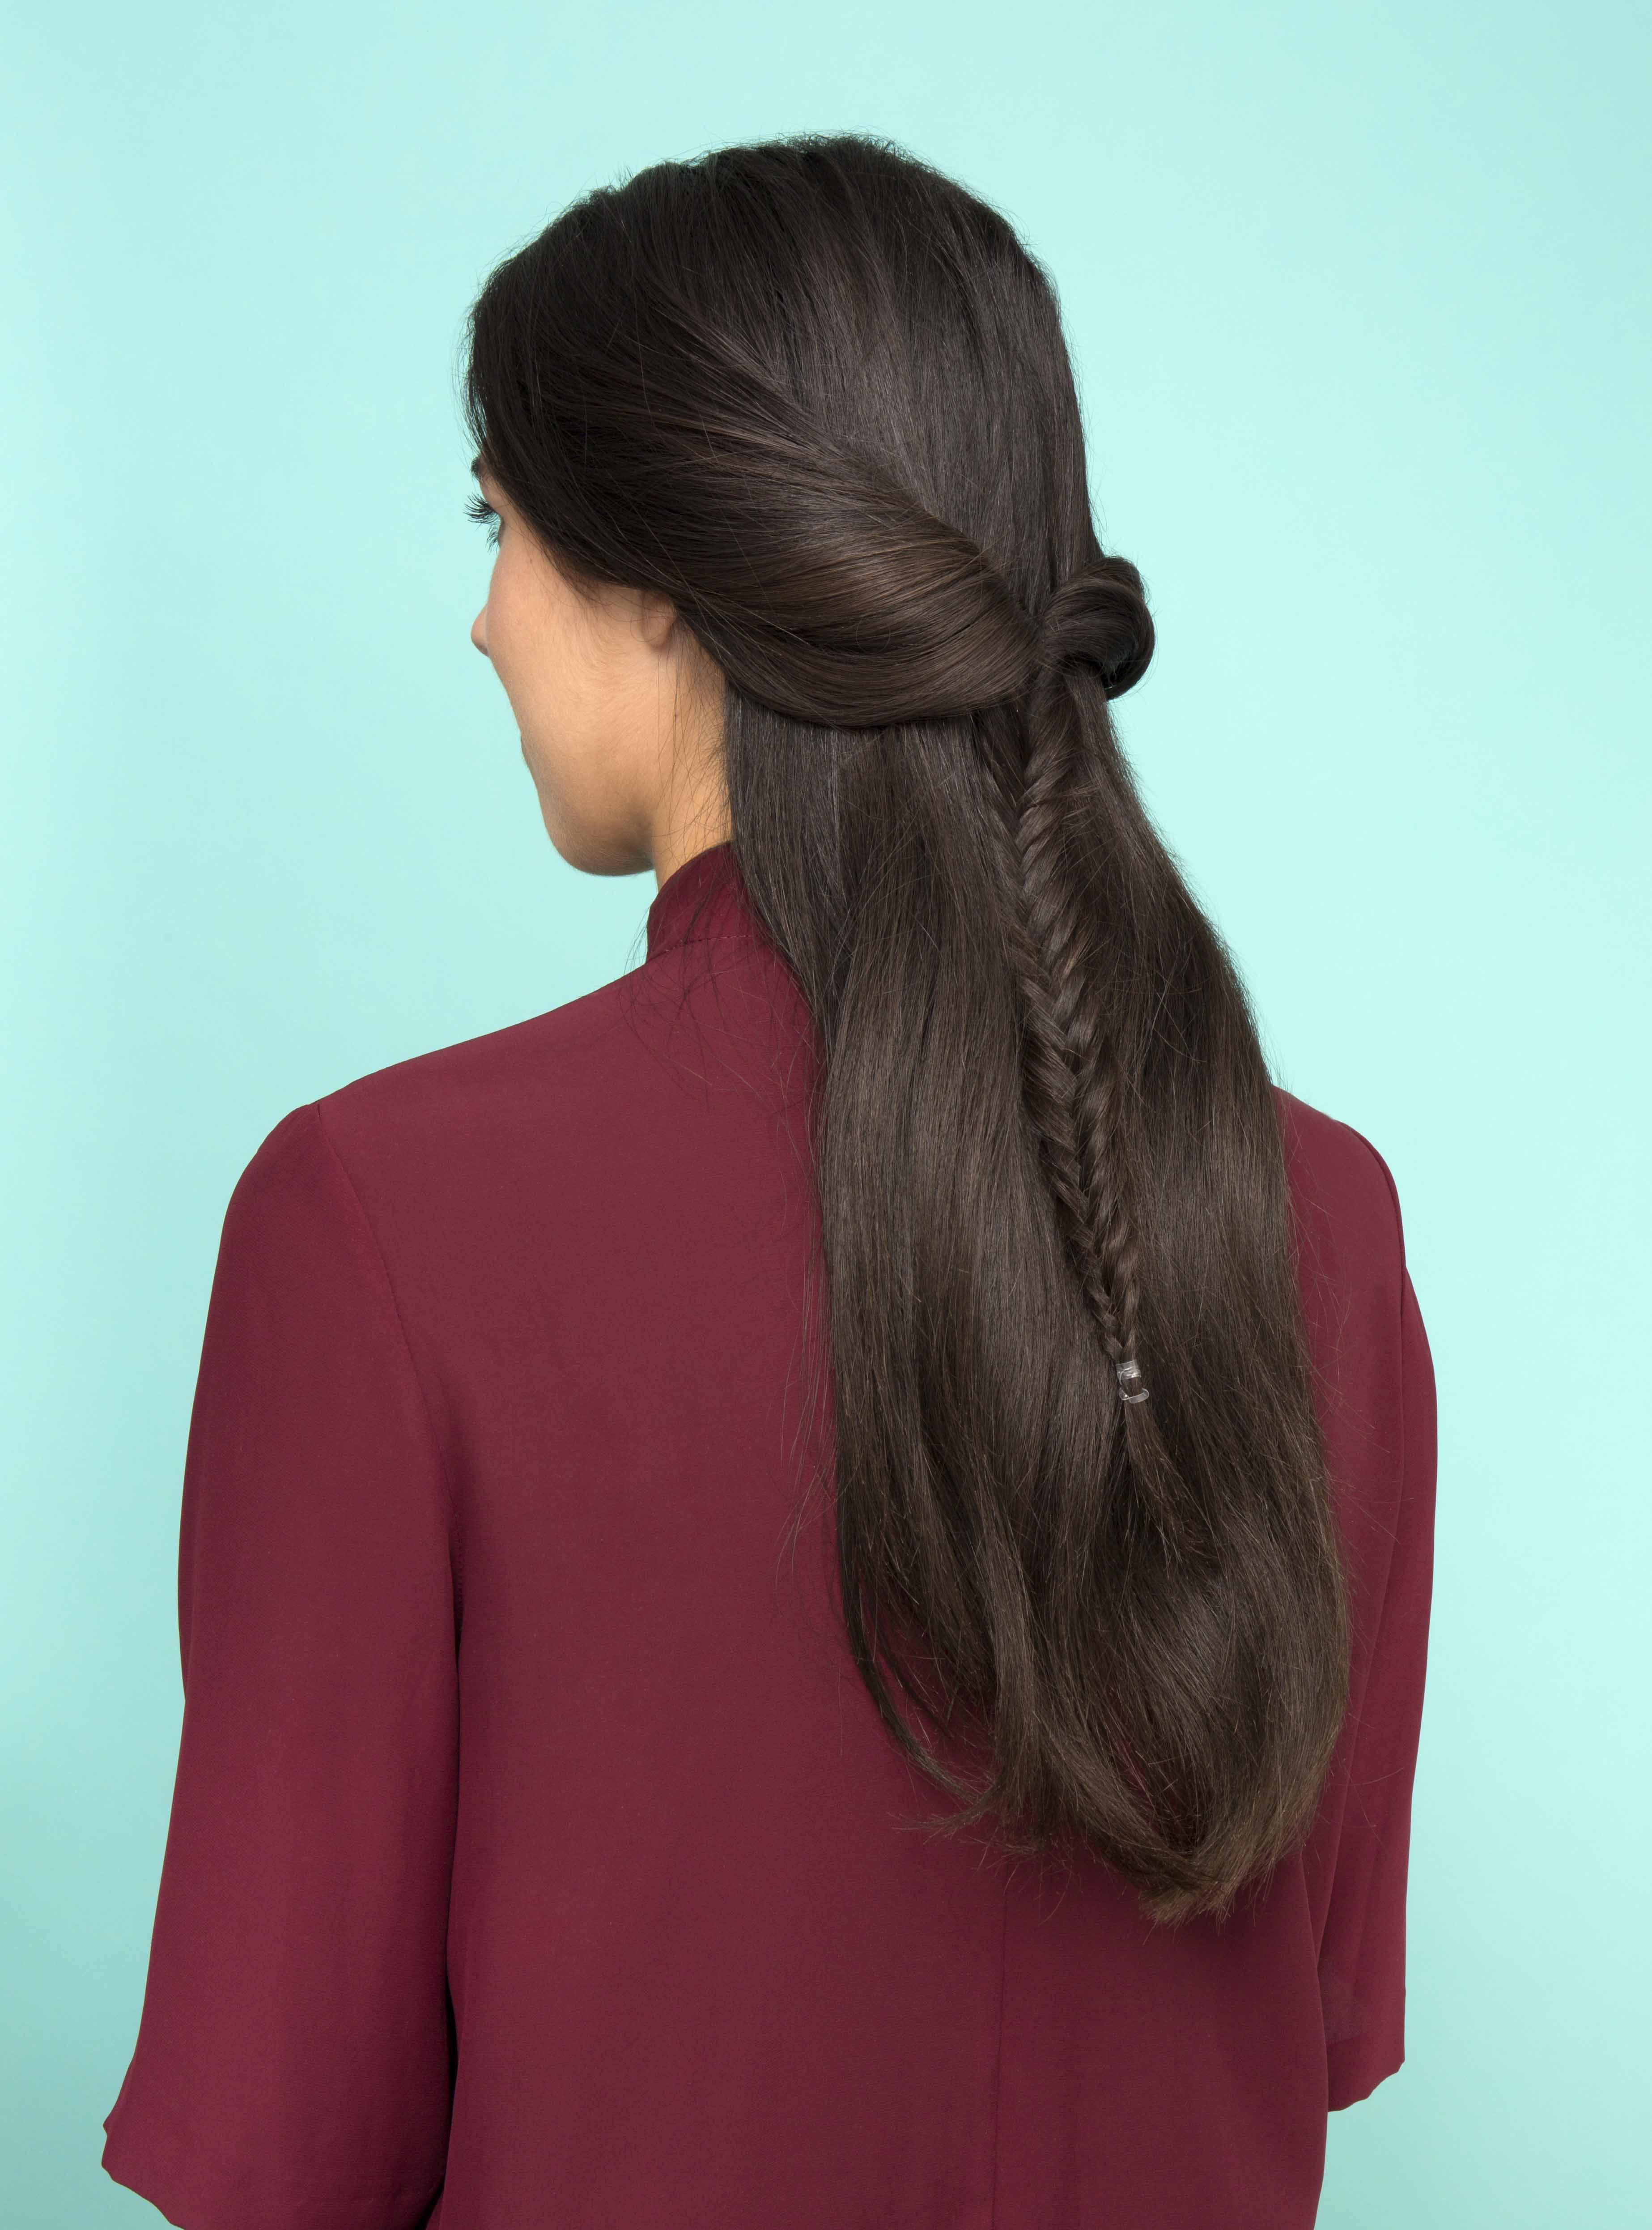 hair ideas fishtail braid